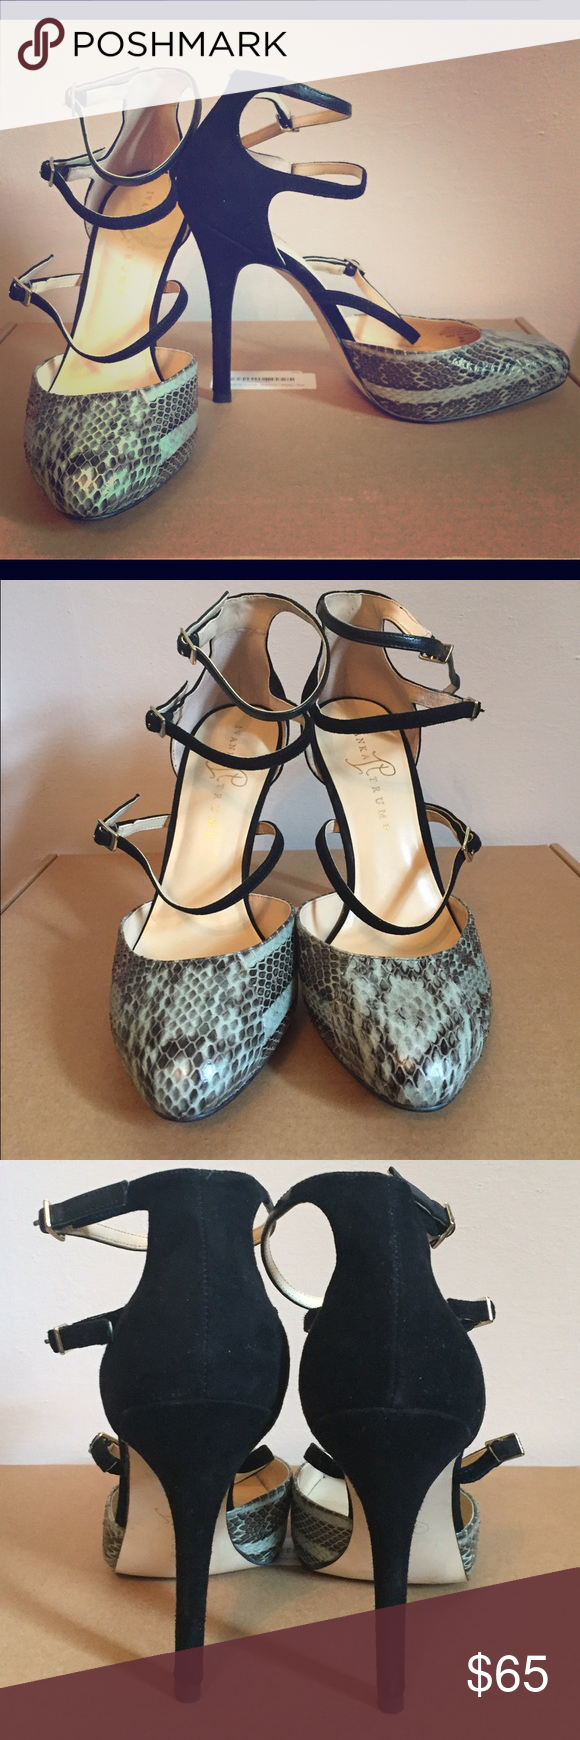 Ivanka Trump Stiletto Heels Beautiful mint green and black Ivanka Trump stiletto heels! Surprisingly comfortable and a great accessory for work or play! Only worn a few times. Ivanka Trump Shoes Heels